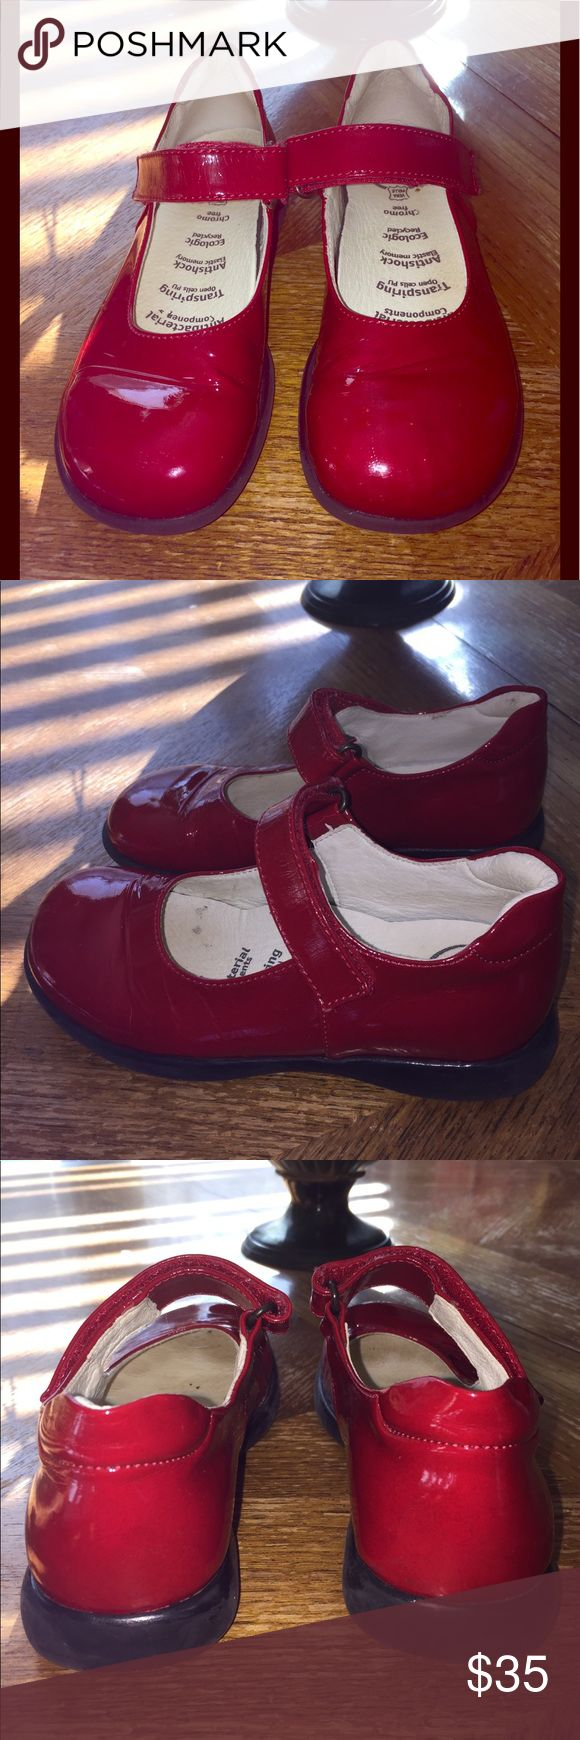 Like New Primigi Red Patent Leather Mary Janes Size 30.  Like New Primigi Red Patent Leather Mary Janes Primigi Shoes Dress Shoes